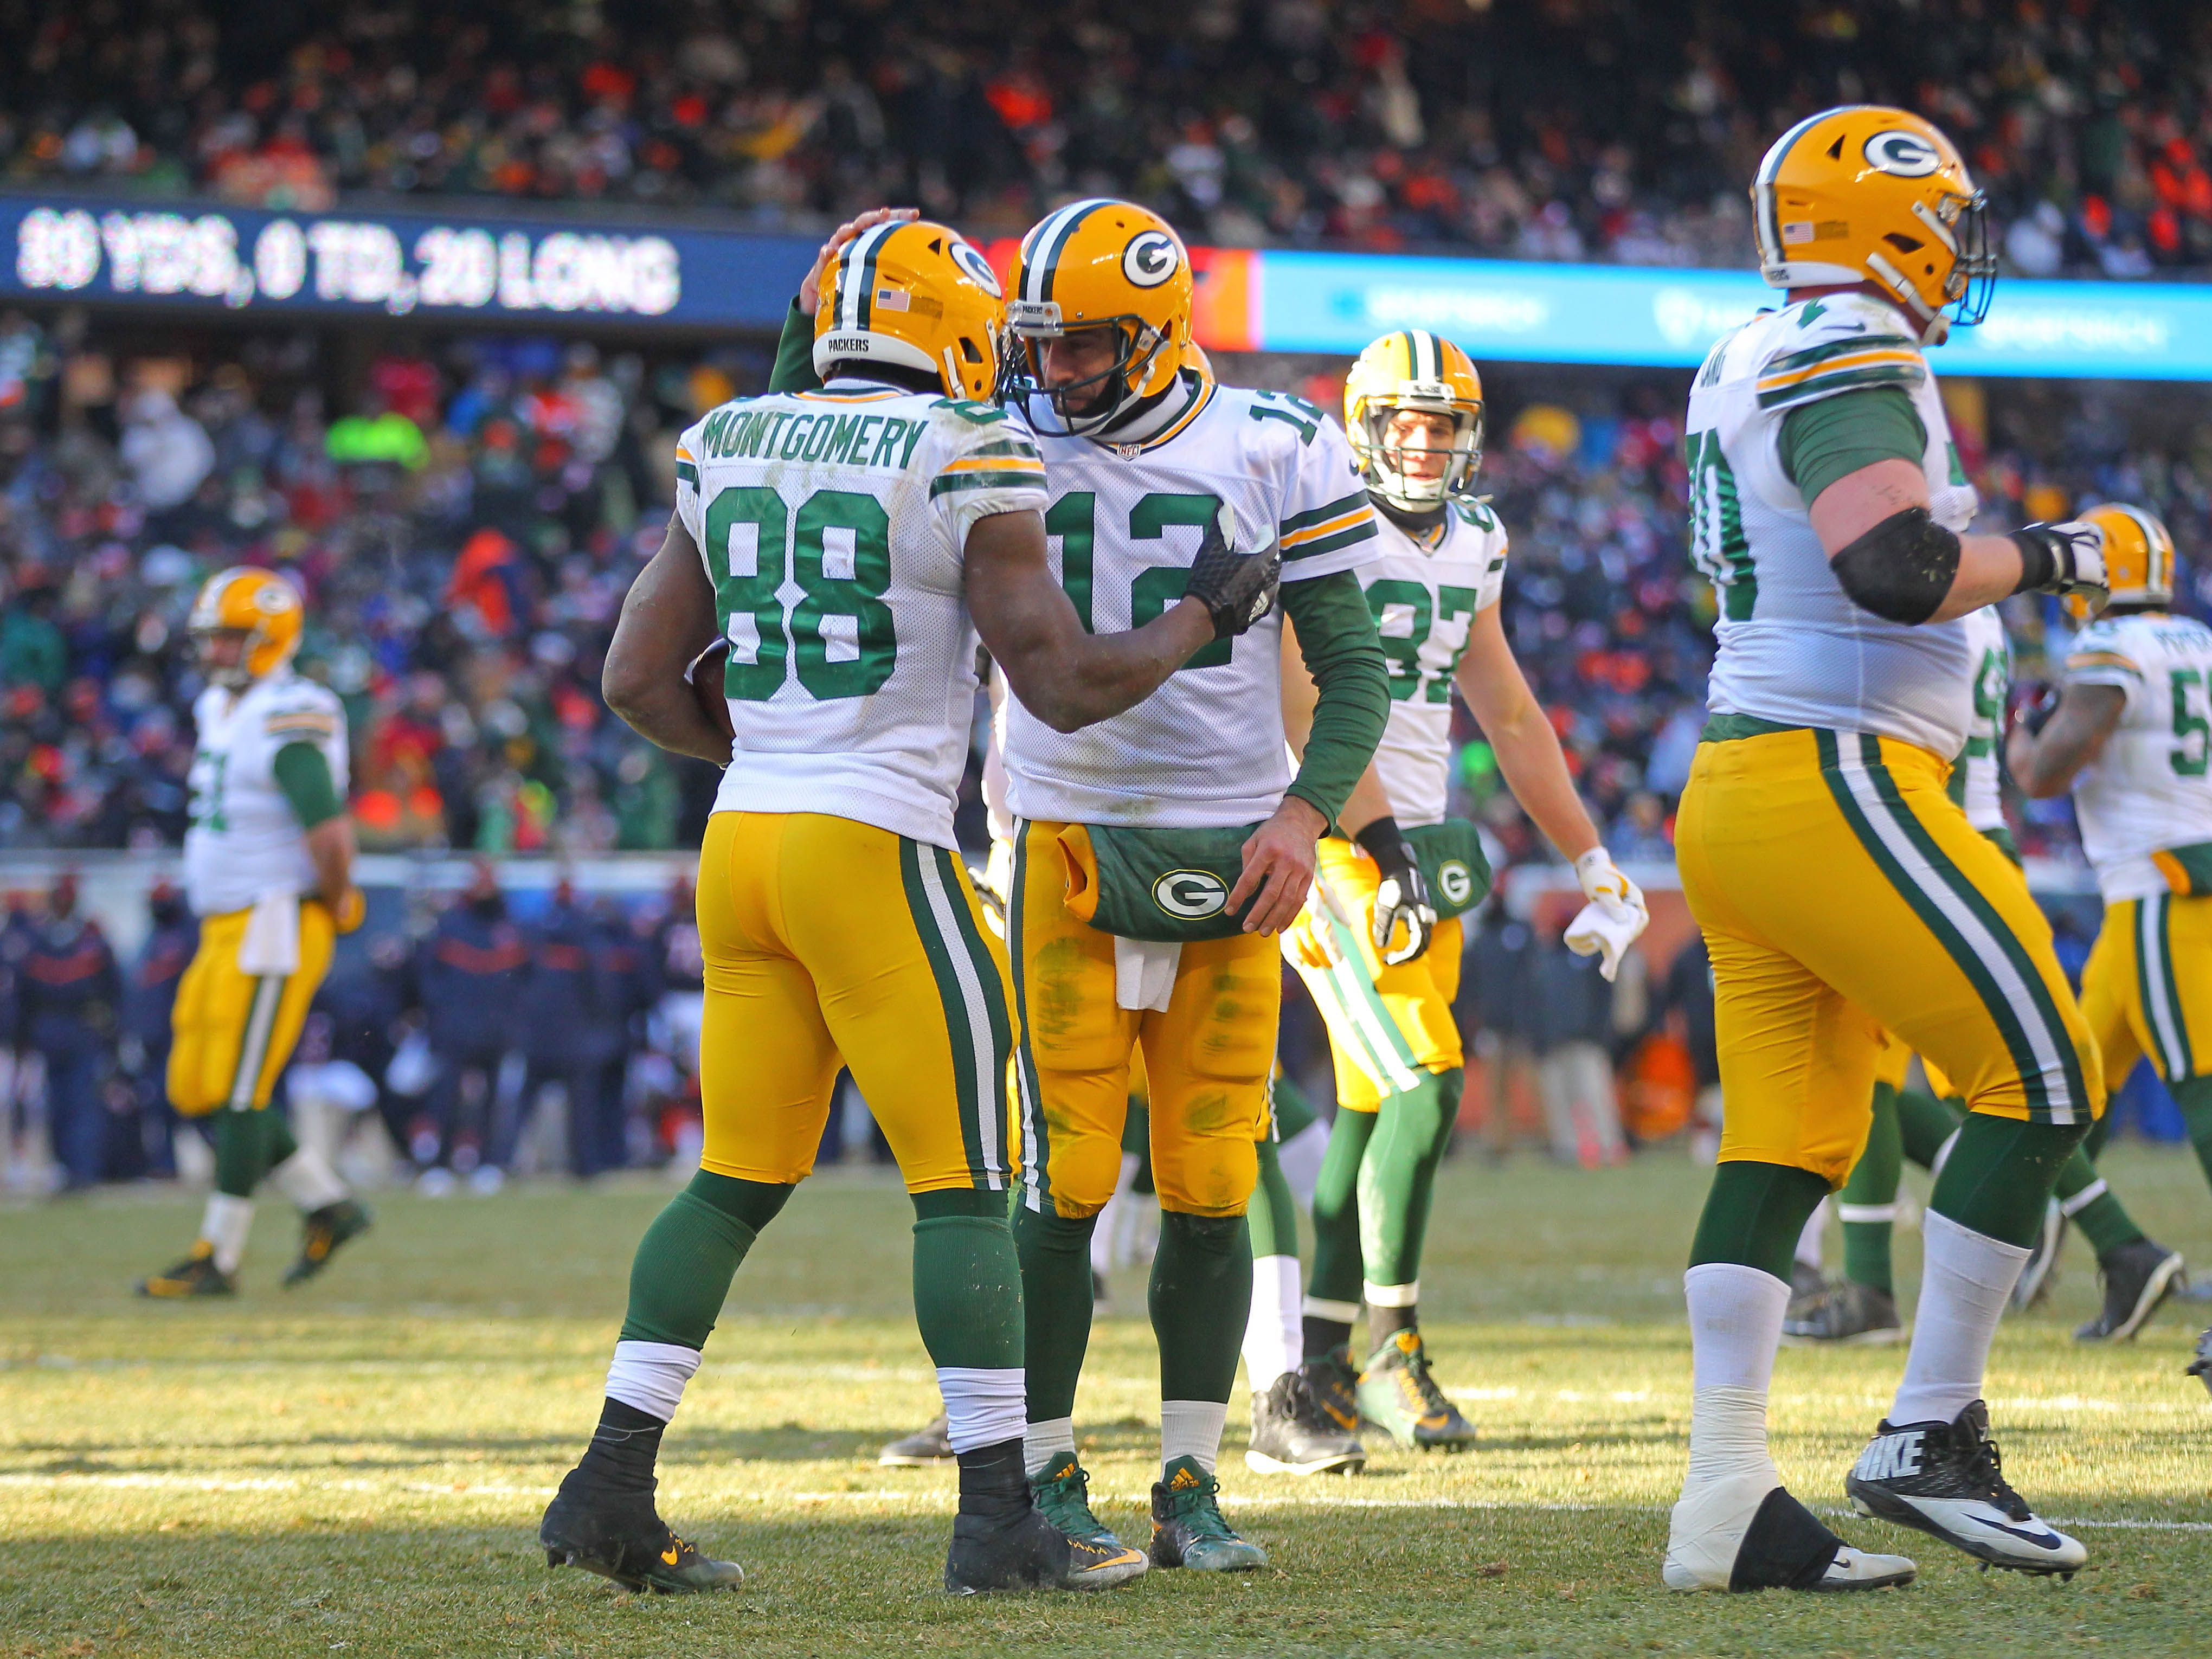 2016-12-18T215852Z_124102878_NOCID_RTRMADP_3_NFL-GREEN-BAY-PACKERS-AT-CHICAGO-BEARS.jpg (4080×3060)